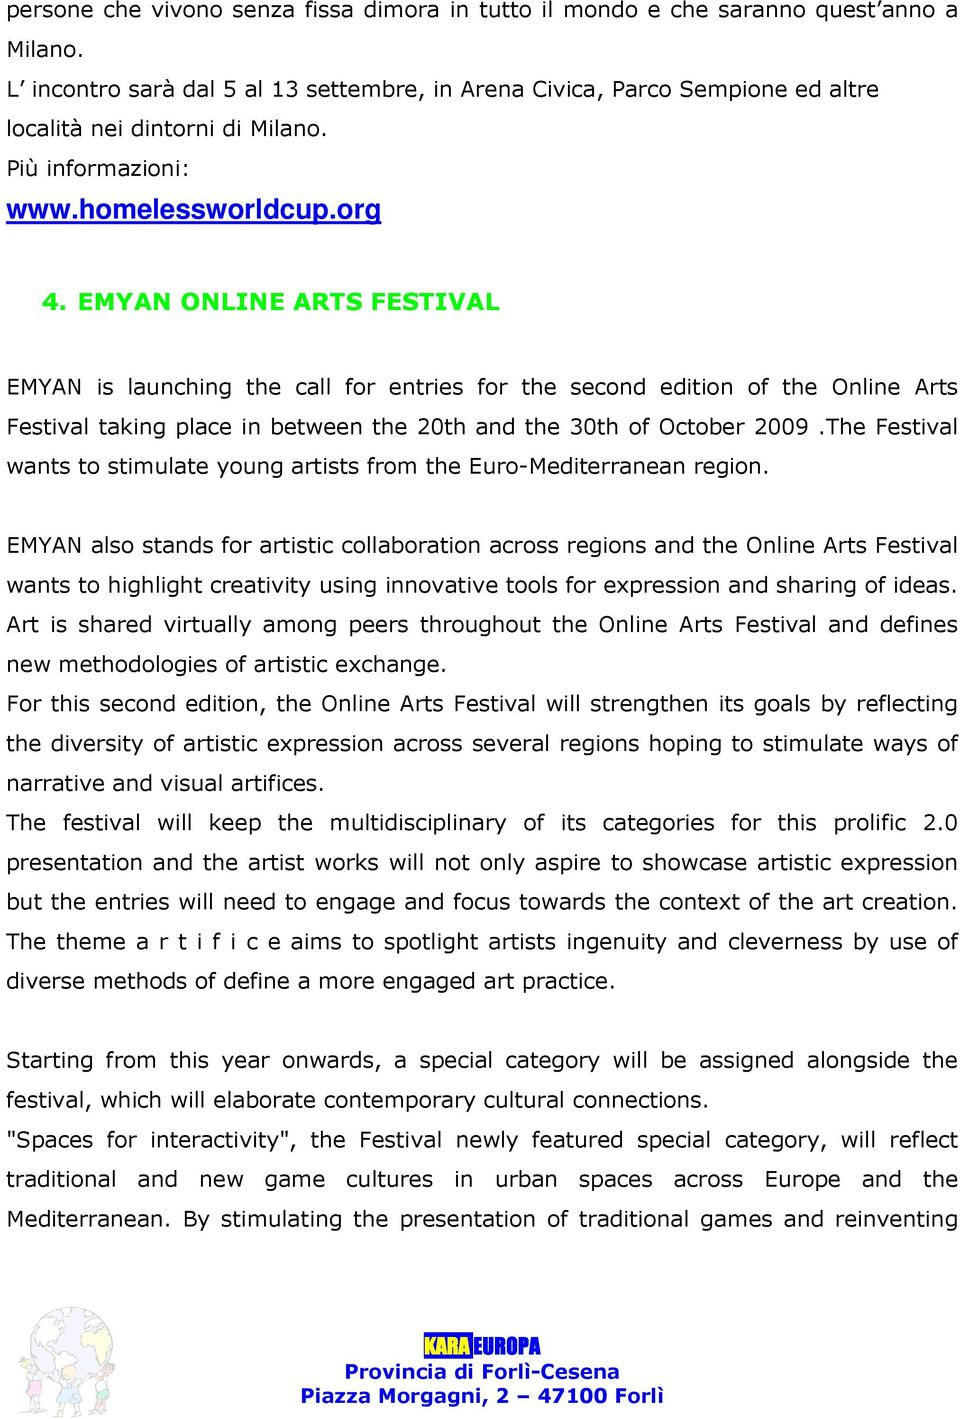 EMYAN ONLINE ARTS FESTIVAL EMYAN is launching the call for entries for the second edition of the Online Arts Festival taking place in between the 20th and the 30th of October 2009.